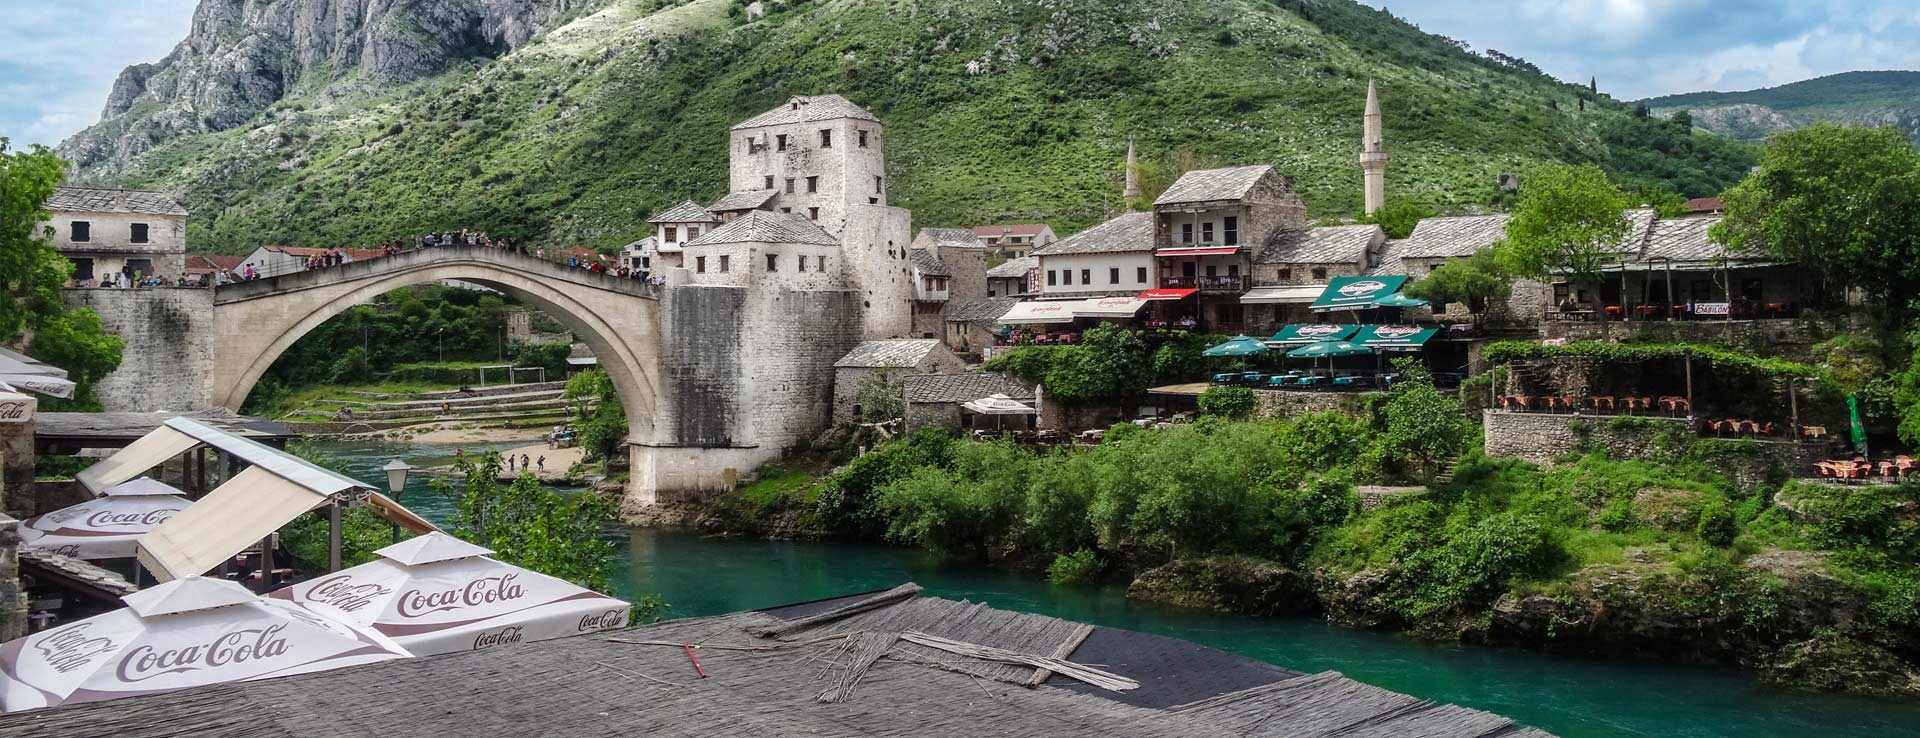 Bosnia and Herzegovina – our 3 day travel itinerary